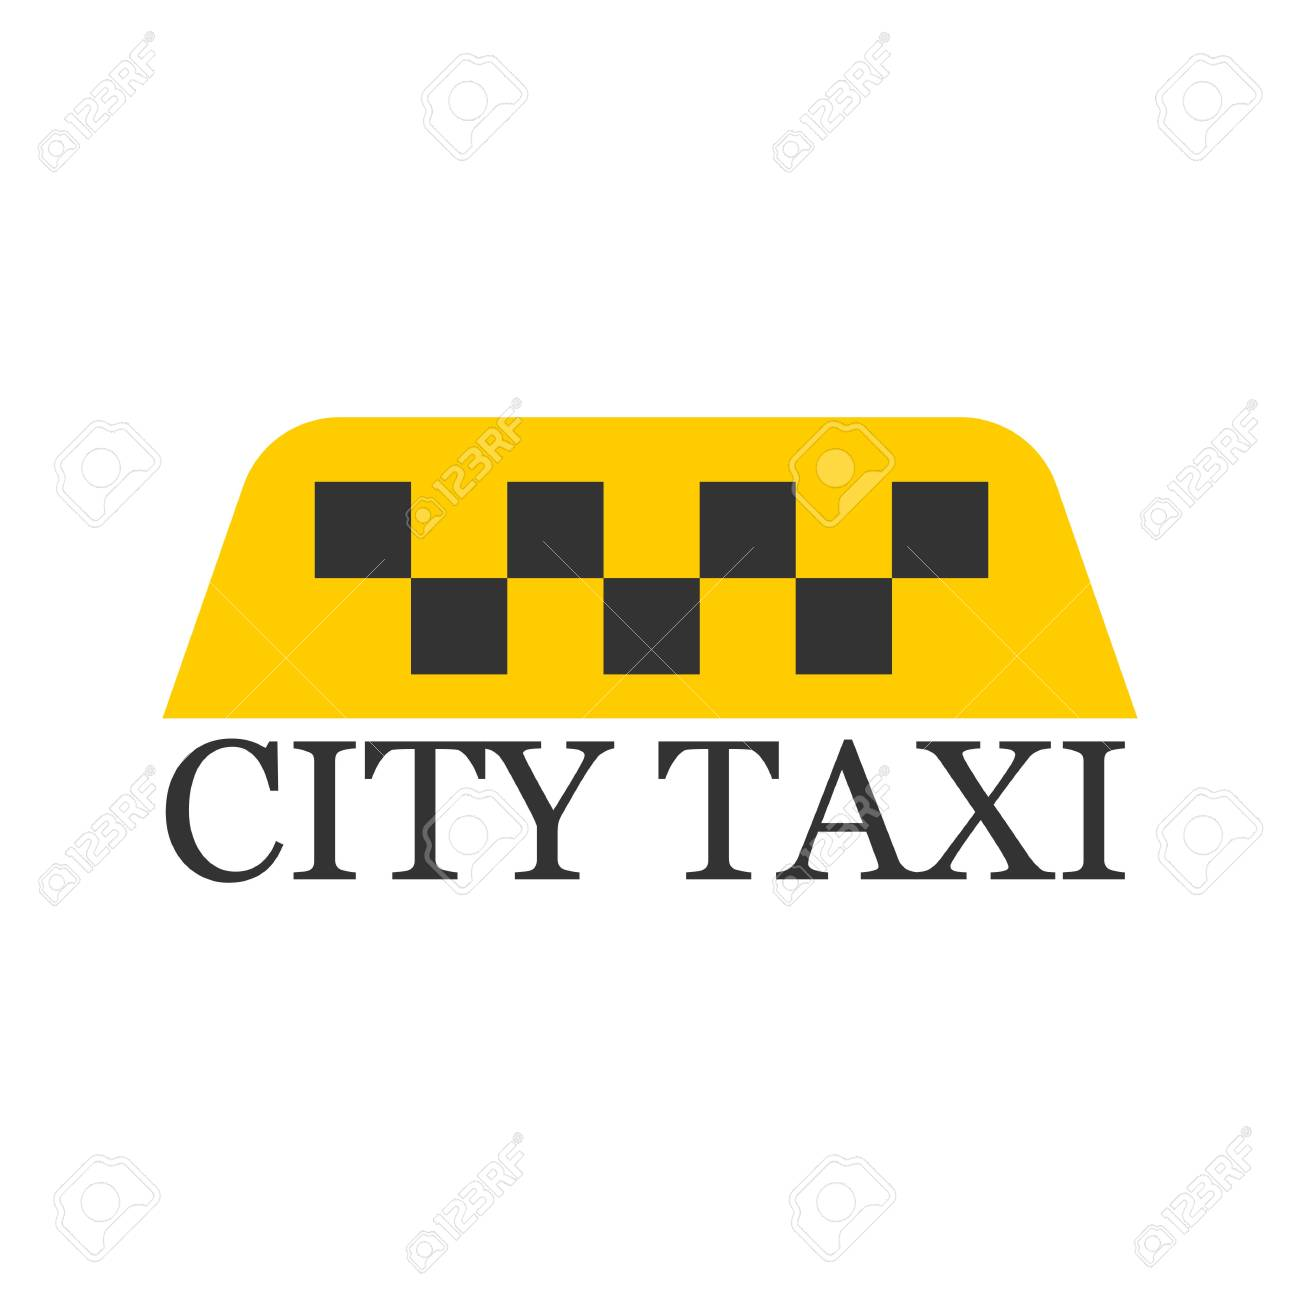 city taxi logotype with checker in yellow and black colors royalty free  cliparts, vectors, and stock illustration. image 76540165.  123rf